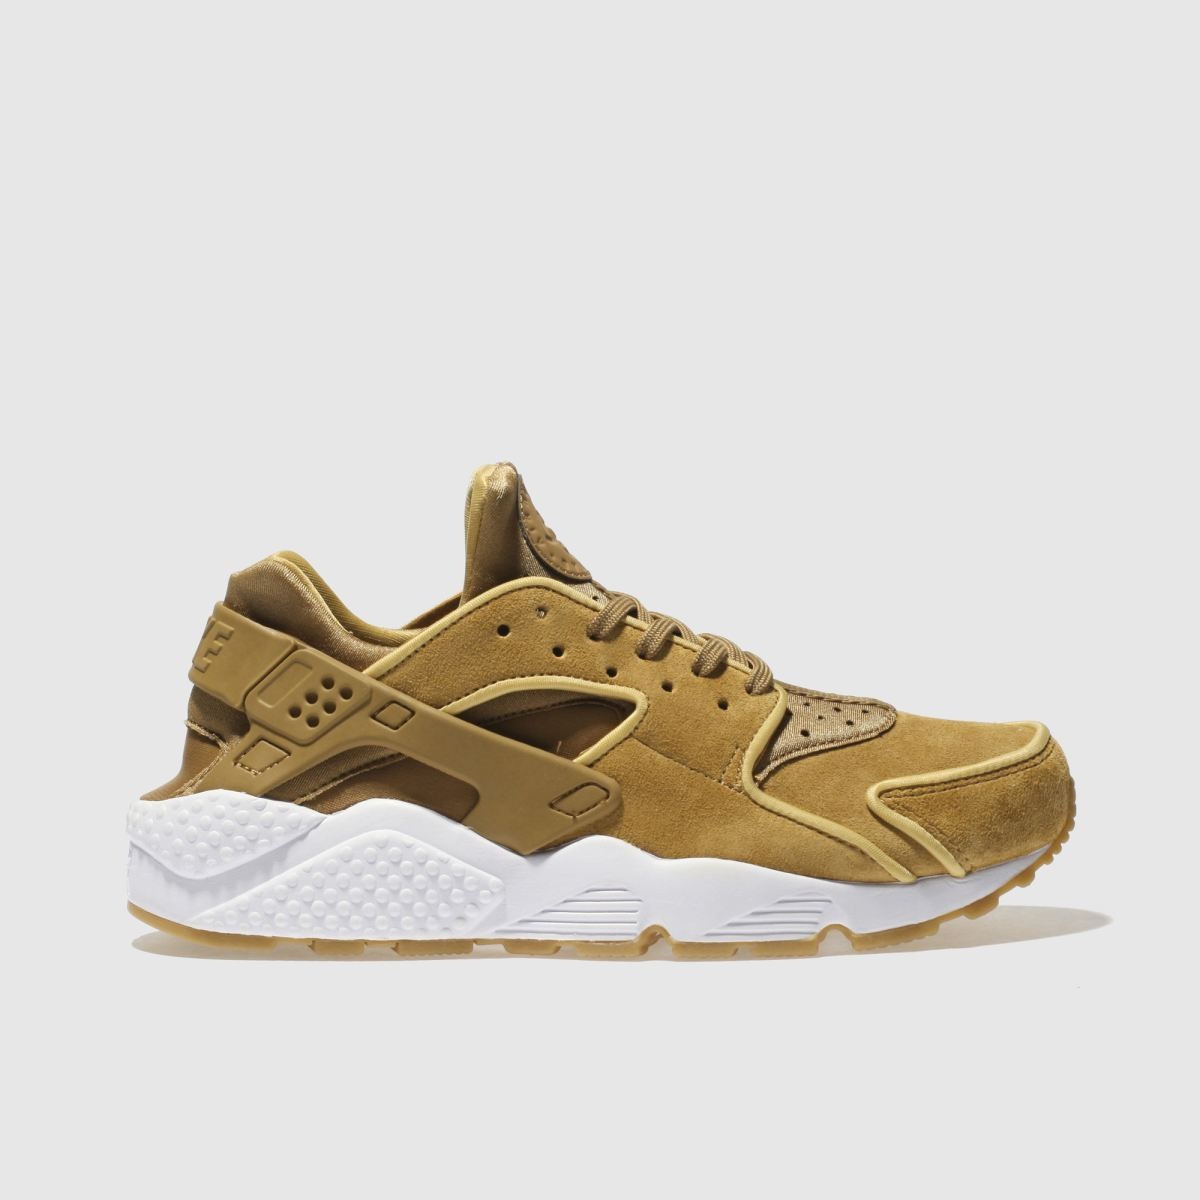 Nike Gold Huarache Run Trainers